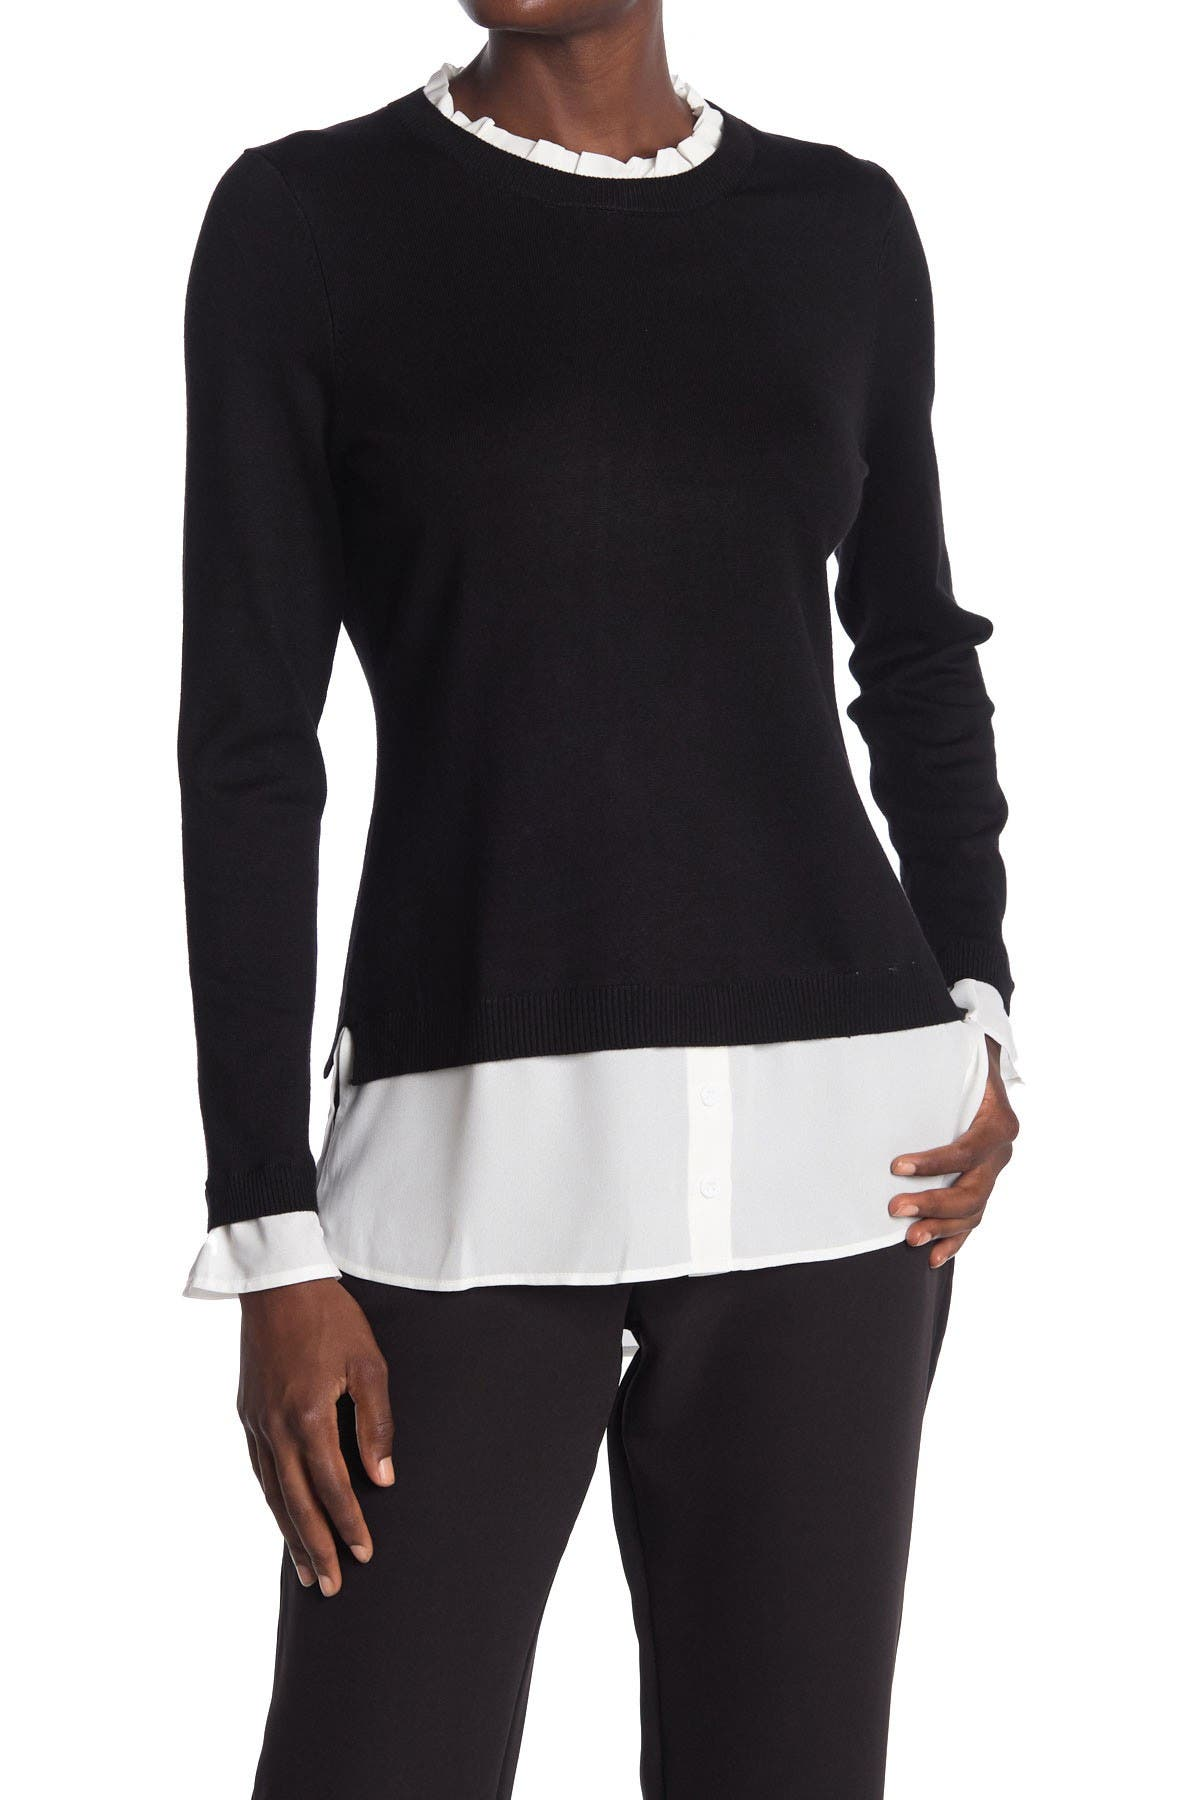 Image of Adrianna Papell Ruffle Neck Twofer Sweater